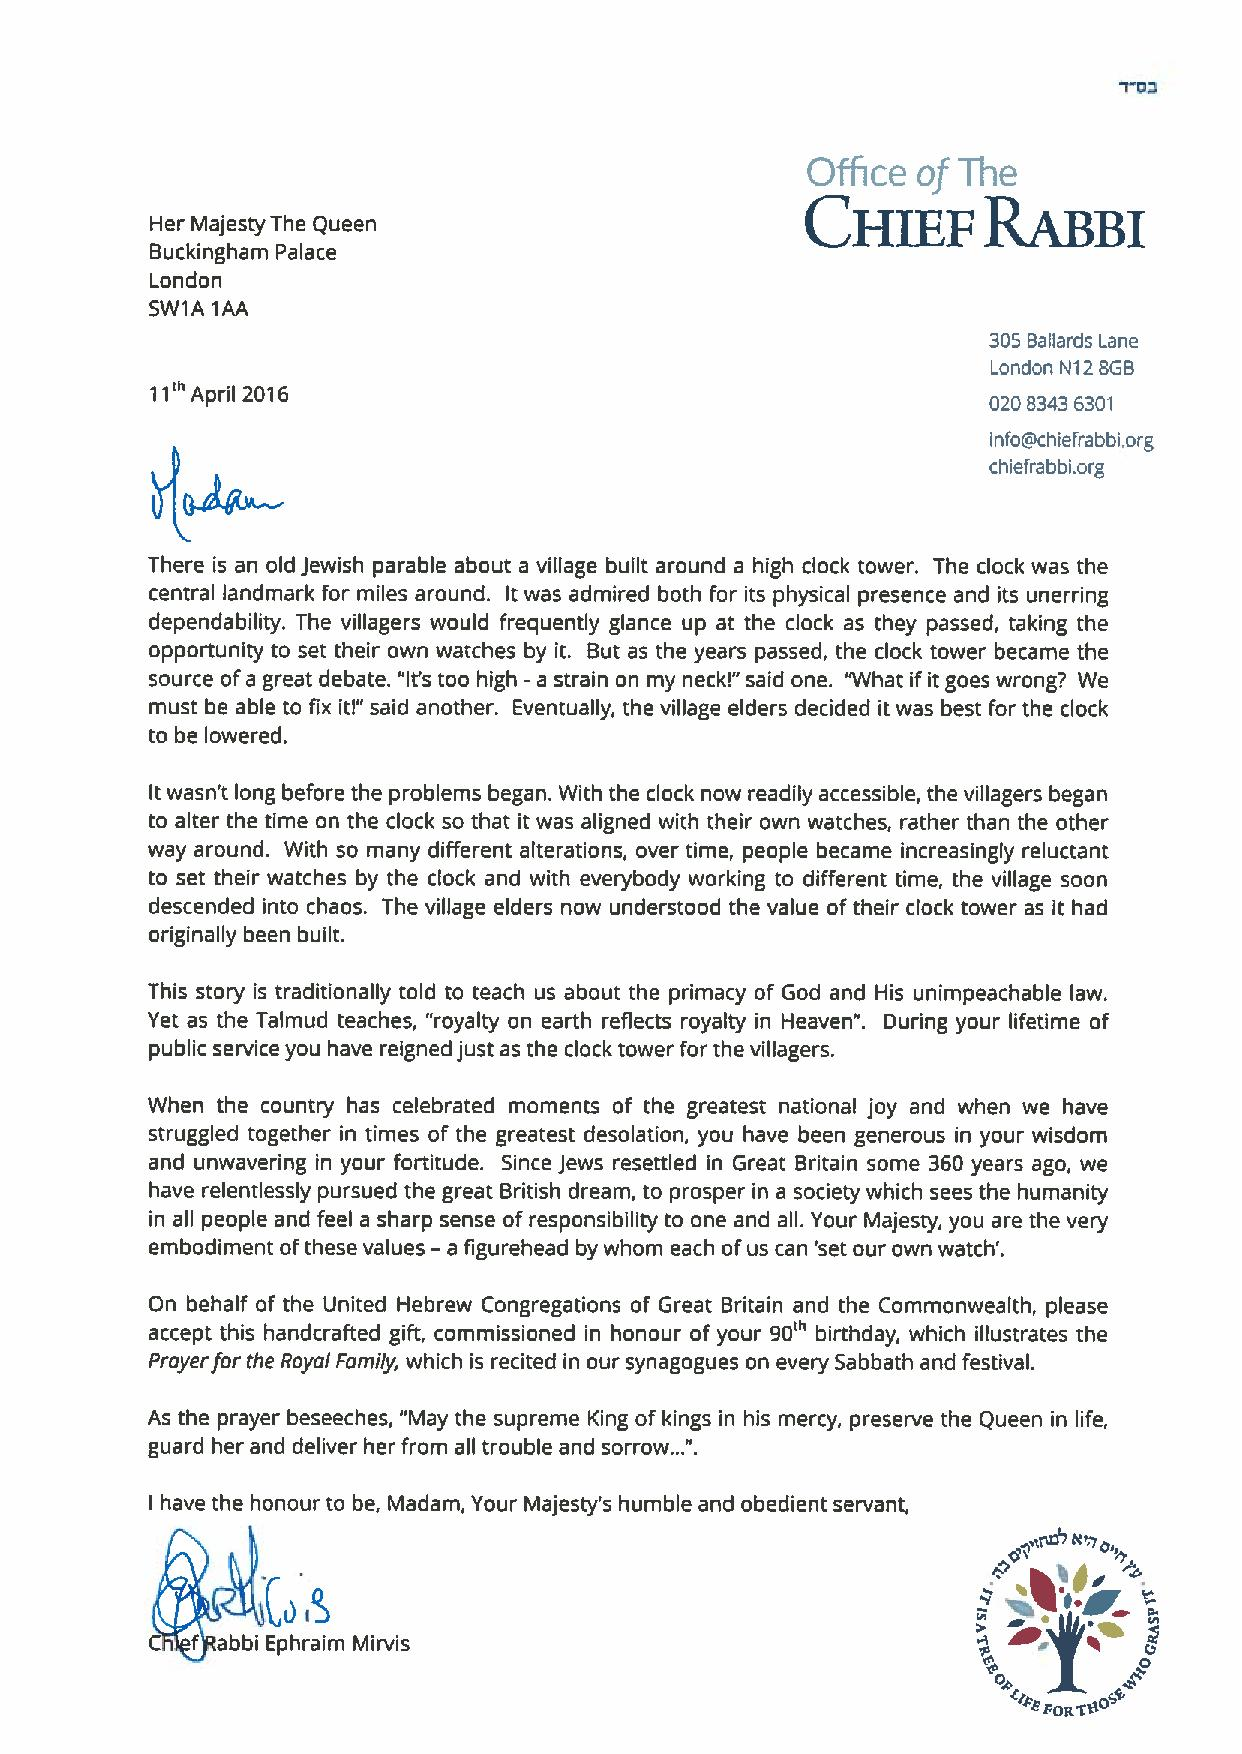 The Chief Rabbi S Letter To The Queen Office Of The